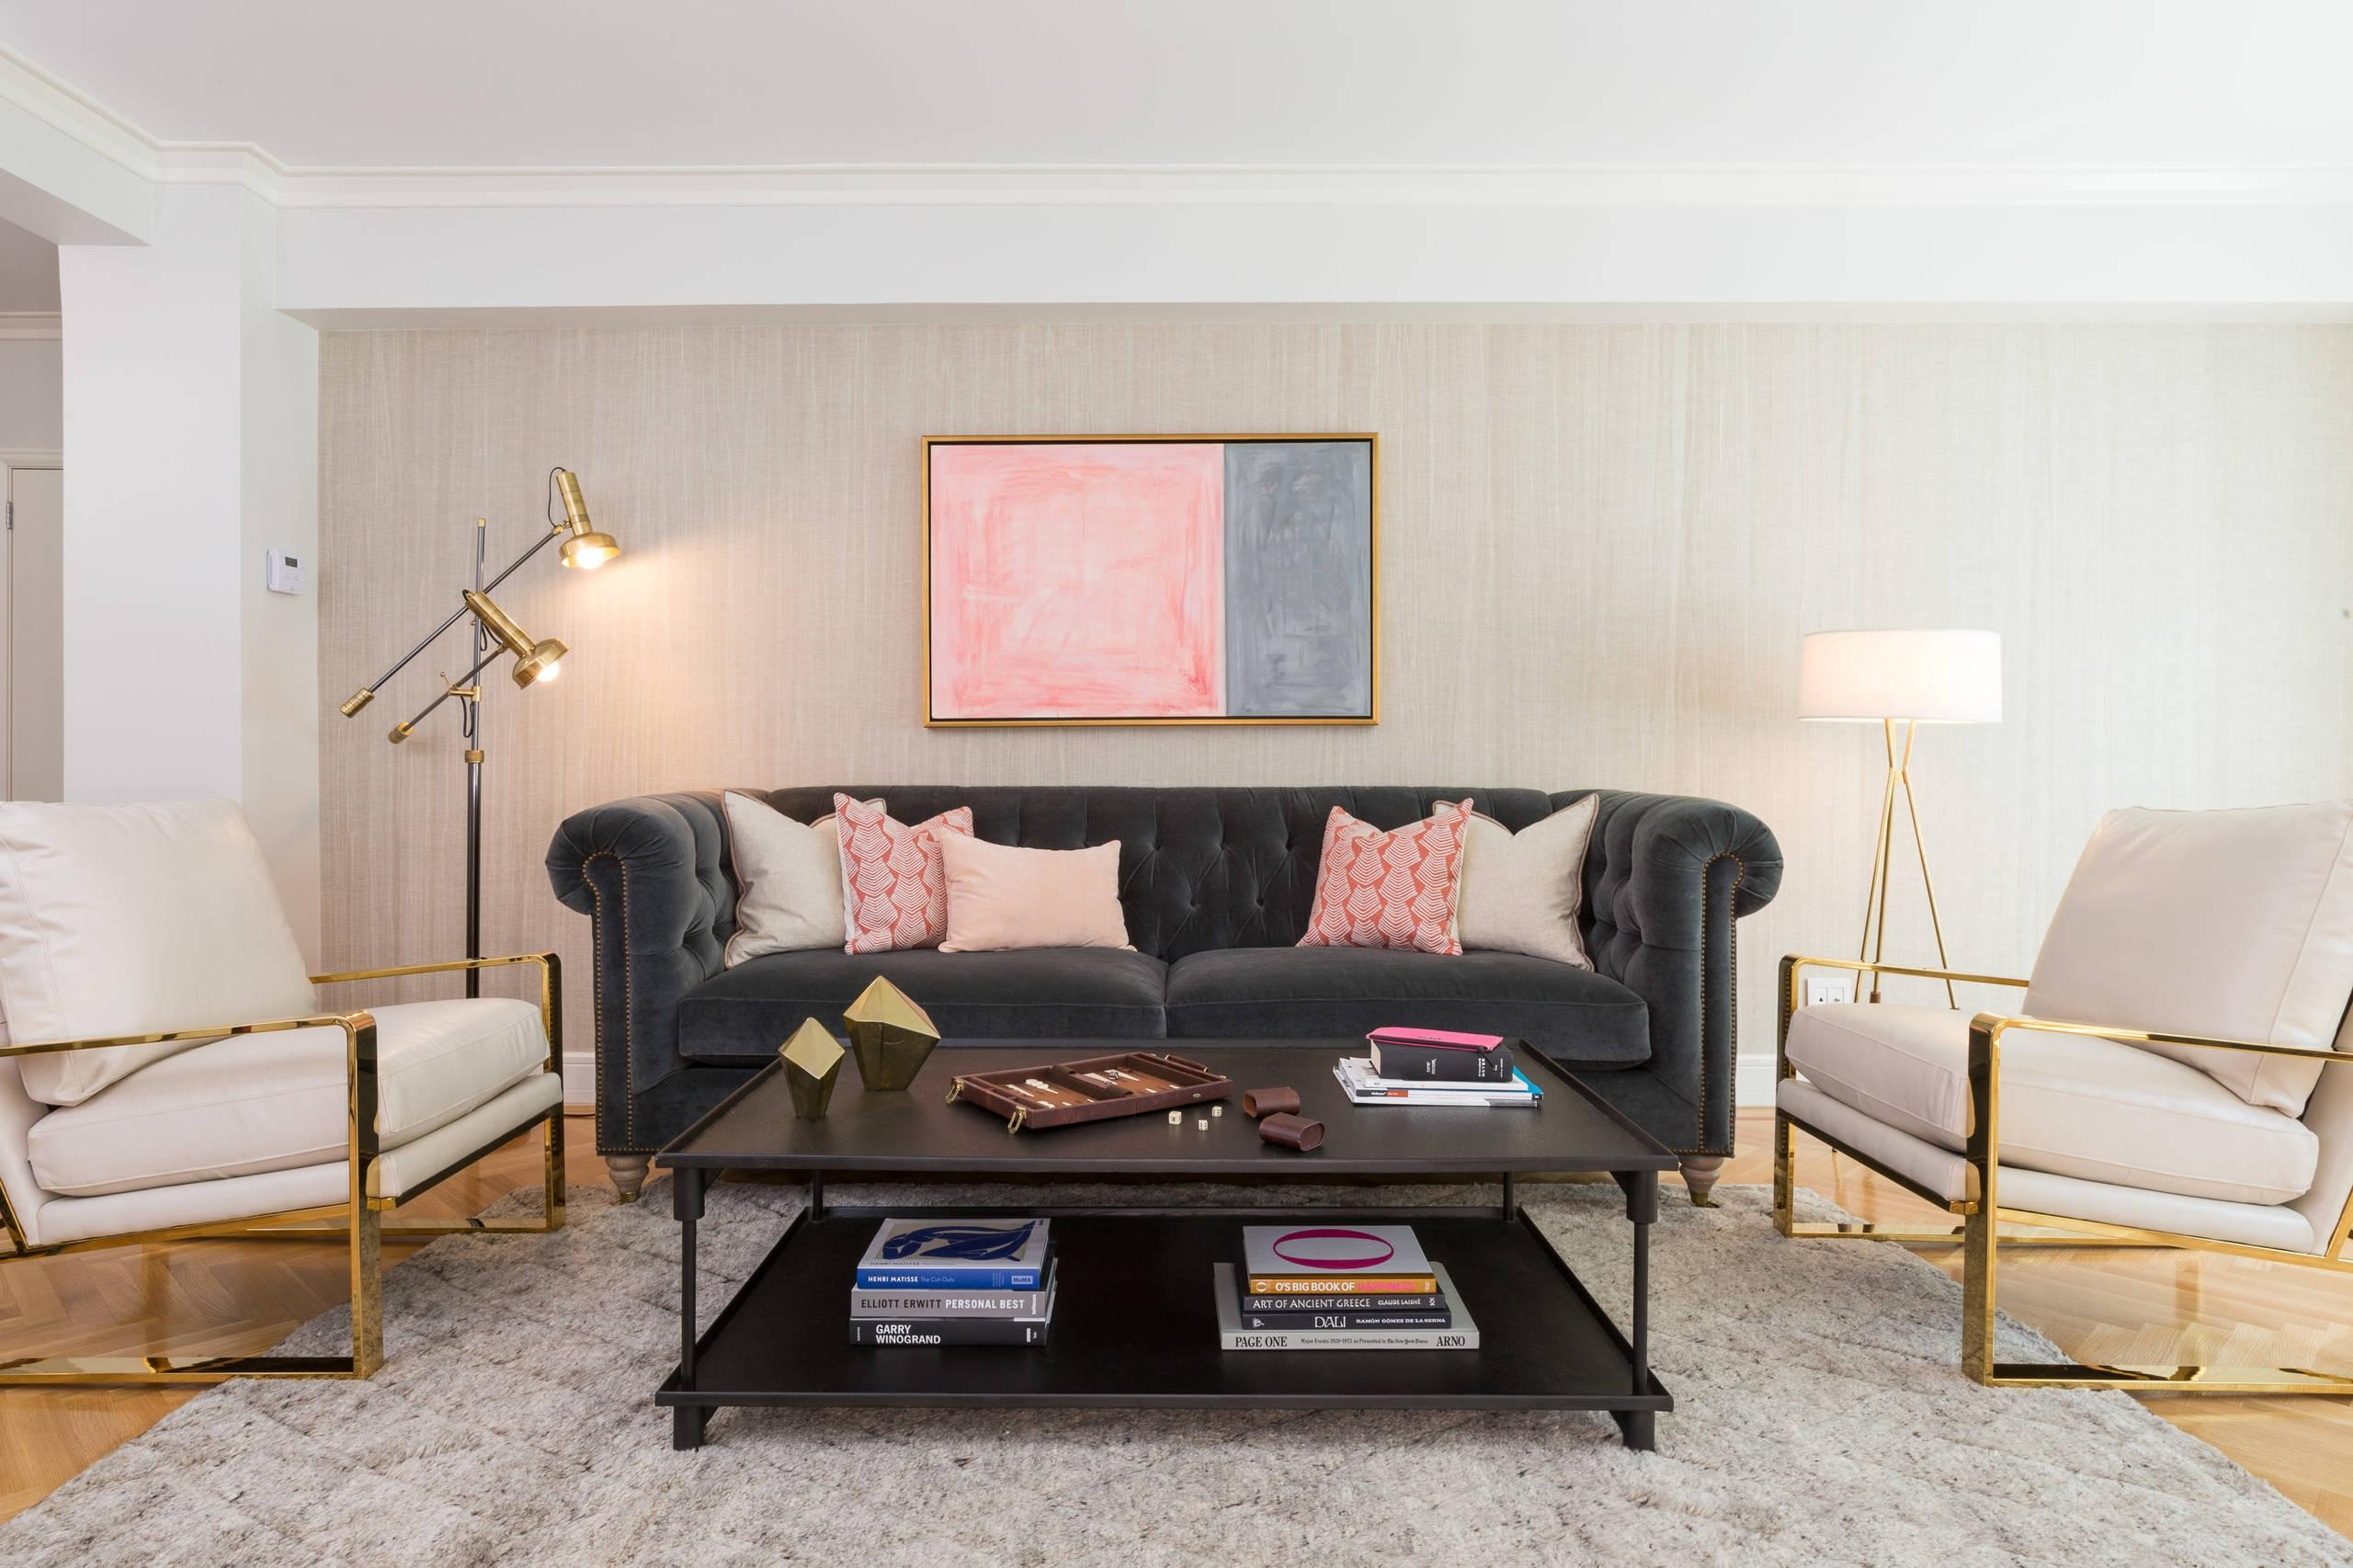 Affordable Tufted Sofa With Inspiration Gallery 24763 | Kengire With Regard To Affordable Tufted Sofas (Image 12 of 20)